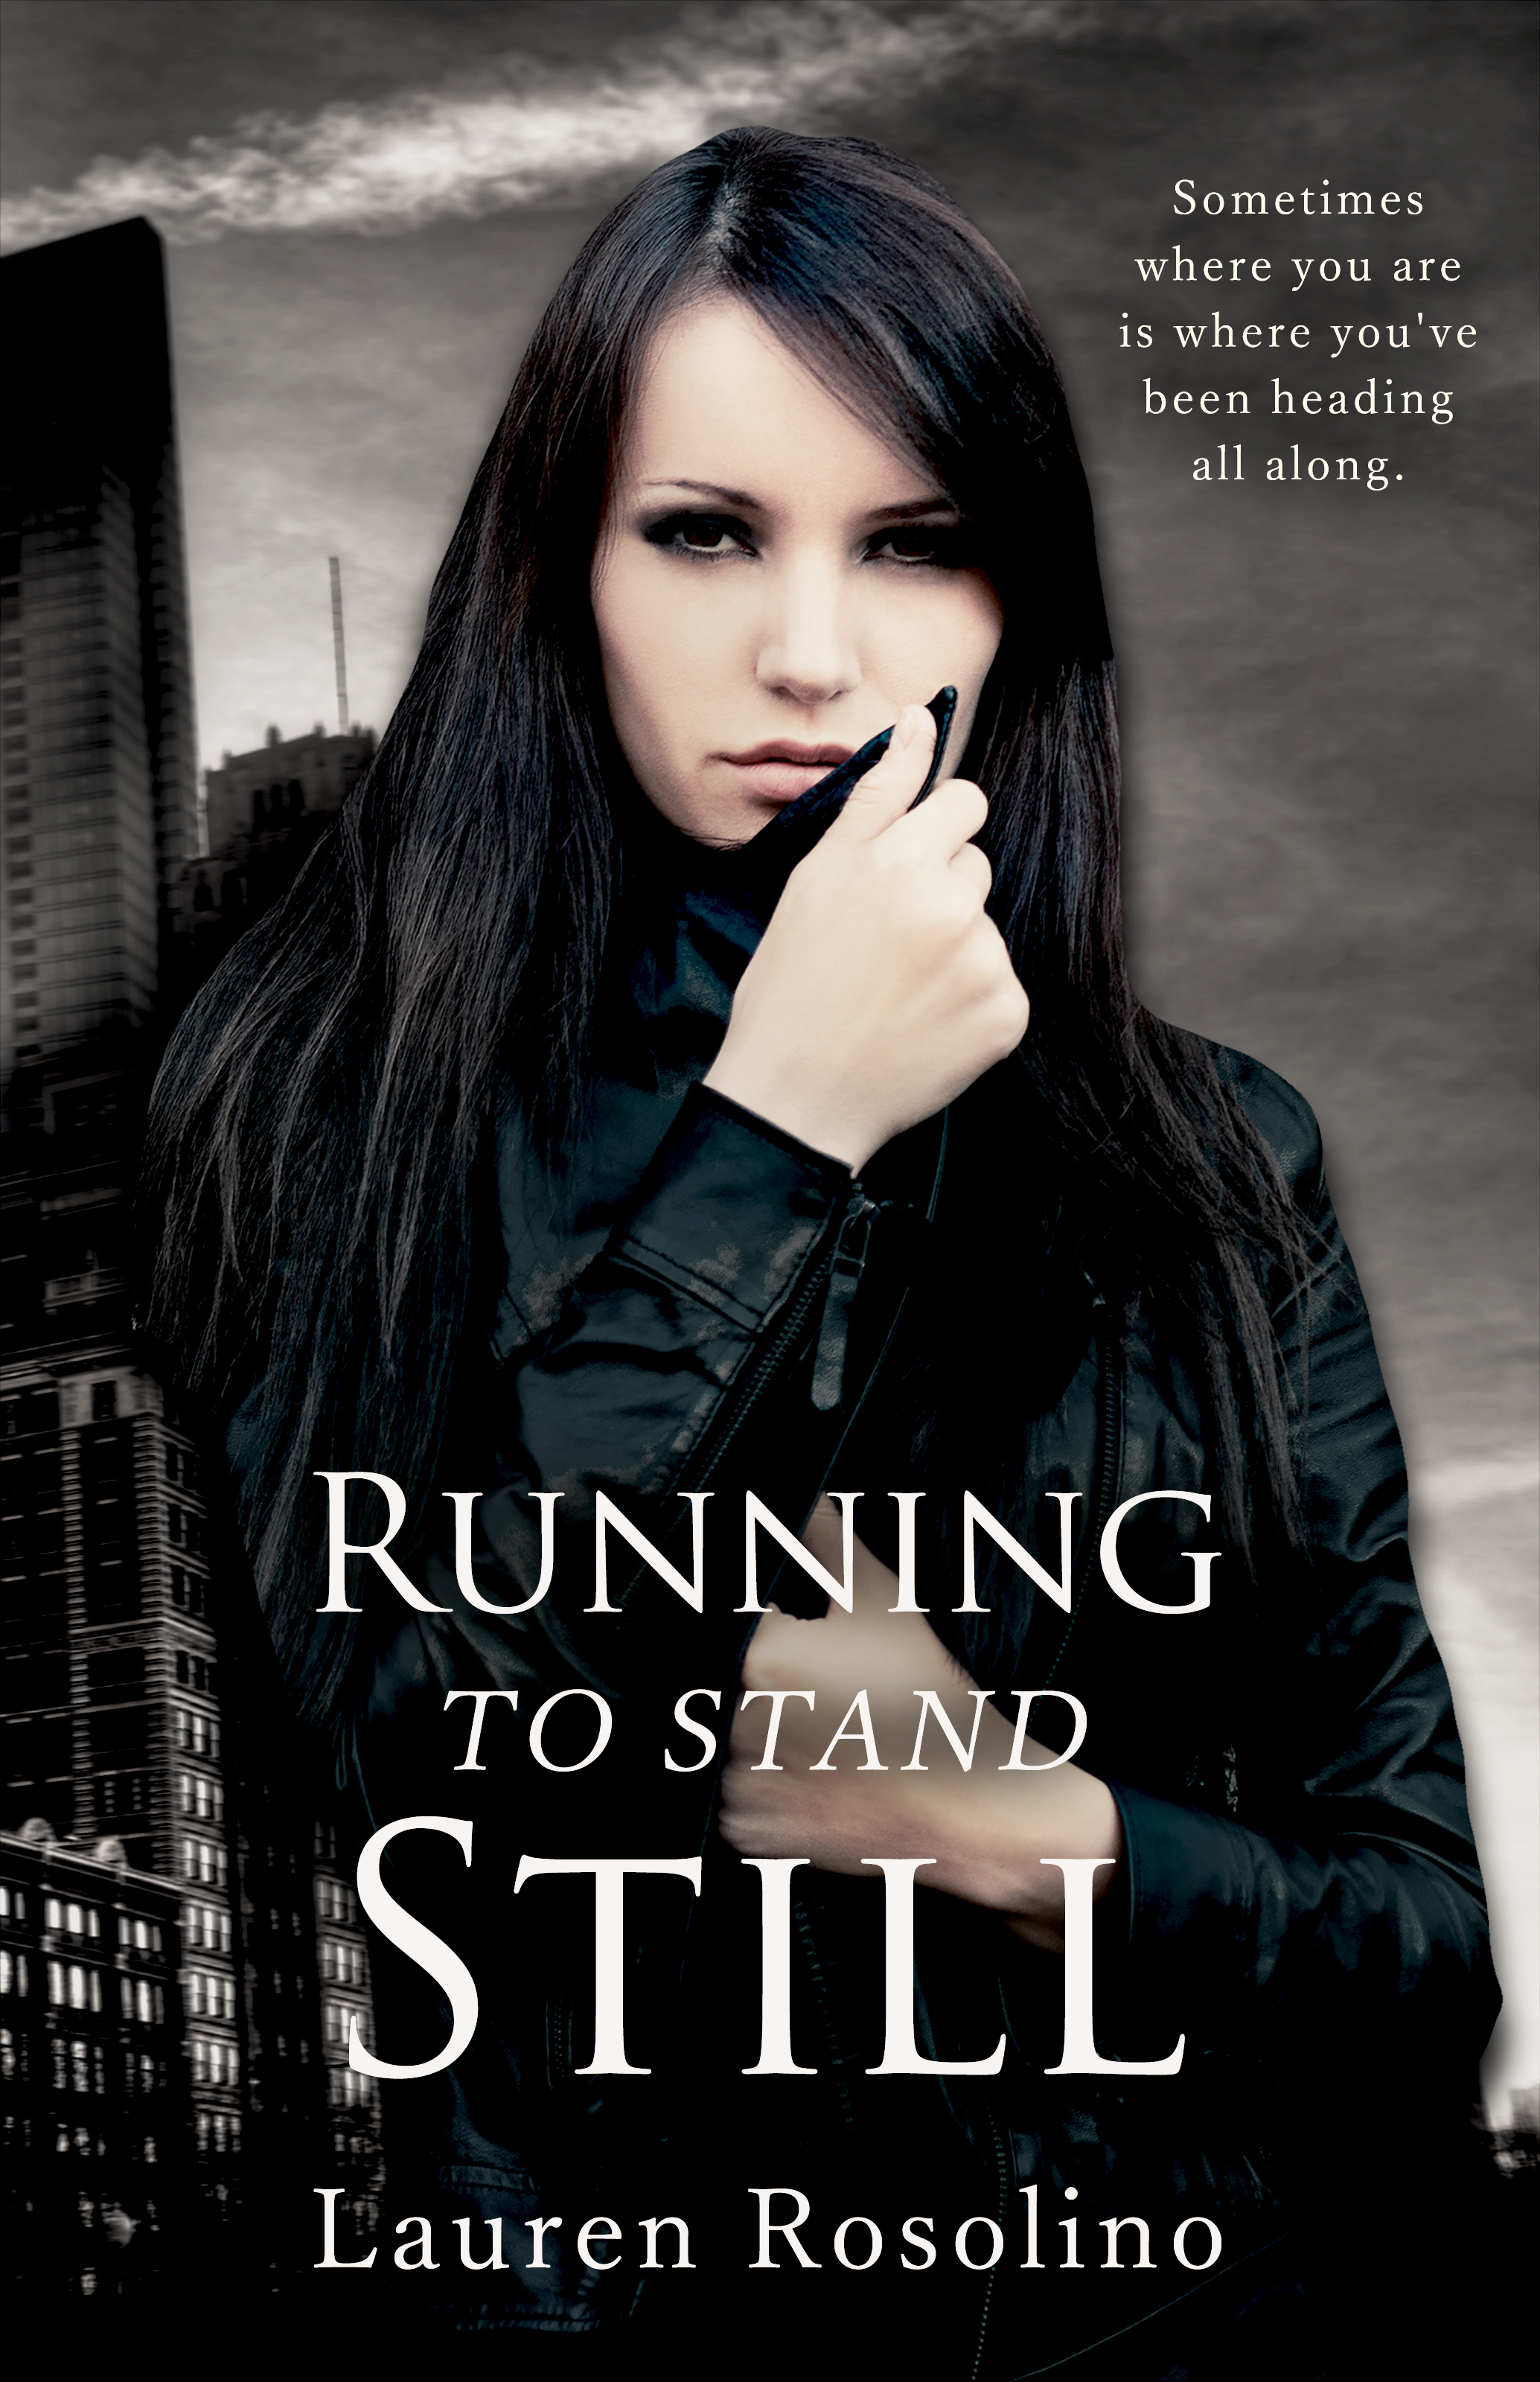 Running to Stand Still by Lauren Rosolino